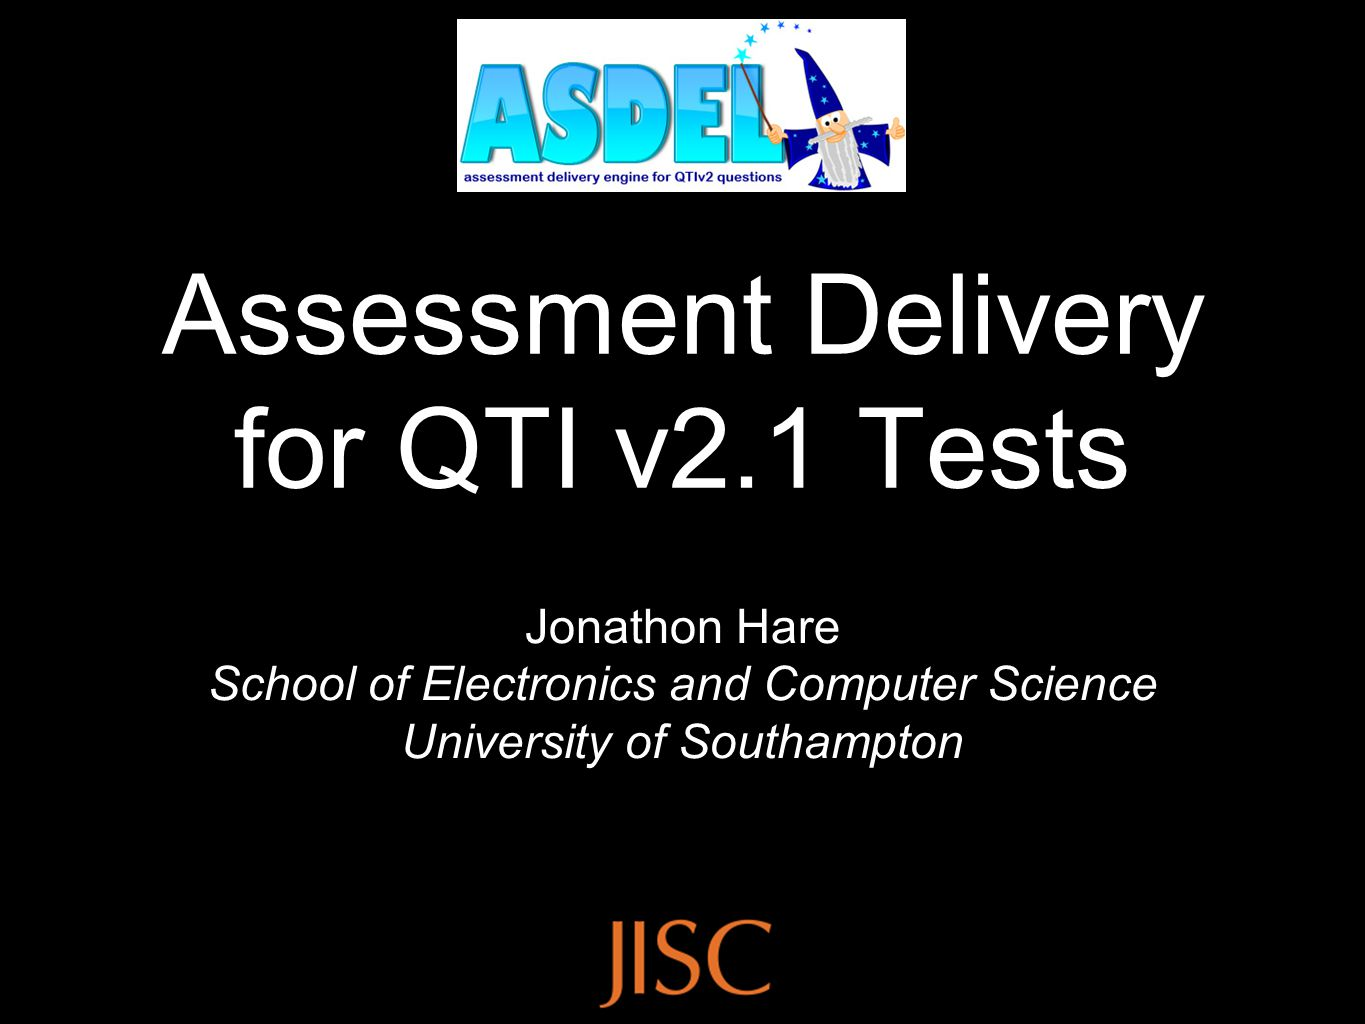 The ASDEL Project One of three e-assessment projects funded in the last round of JISC capital funding Sister projects aqur@te (Kingston) and minibix (Cambridge) Original aim was to build an engine for the delivery of QTI v2.1 assessments Attempts to implement all of the QTI specification with regard to the AssessmentTest class Both adaptive and non-adaptive assessments